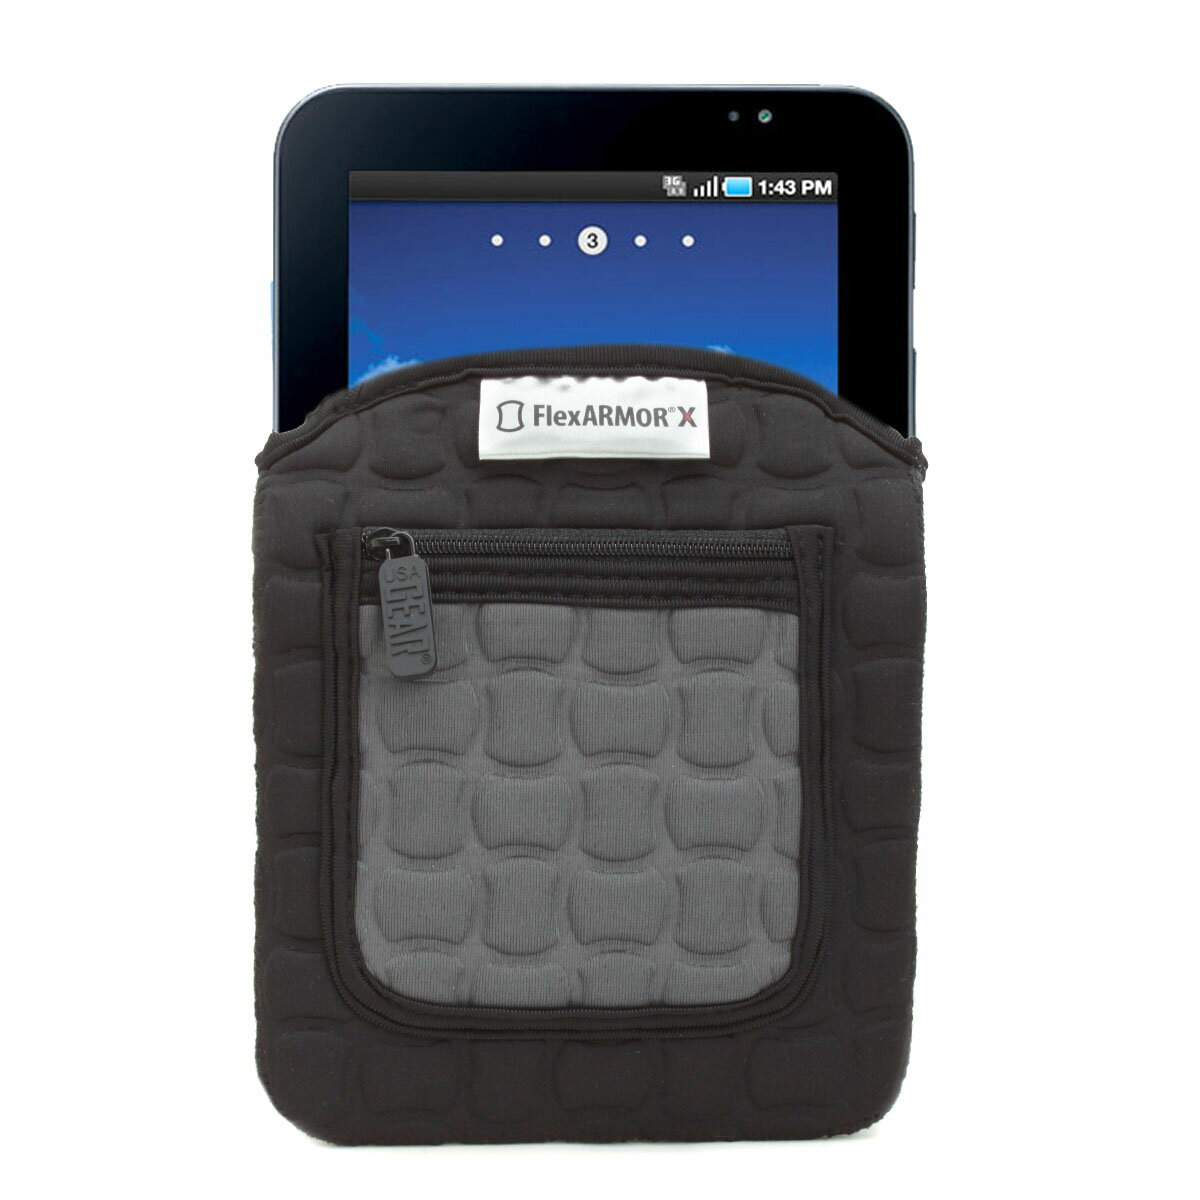 FlexARMOR X Neoprene eReader Sleeve Case with Carrying Handle , Shock Protection & Accessory Pocket 1